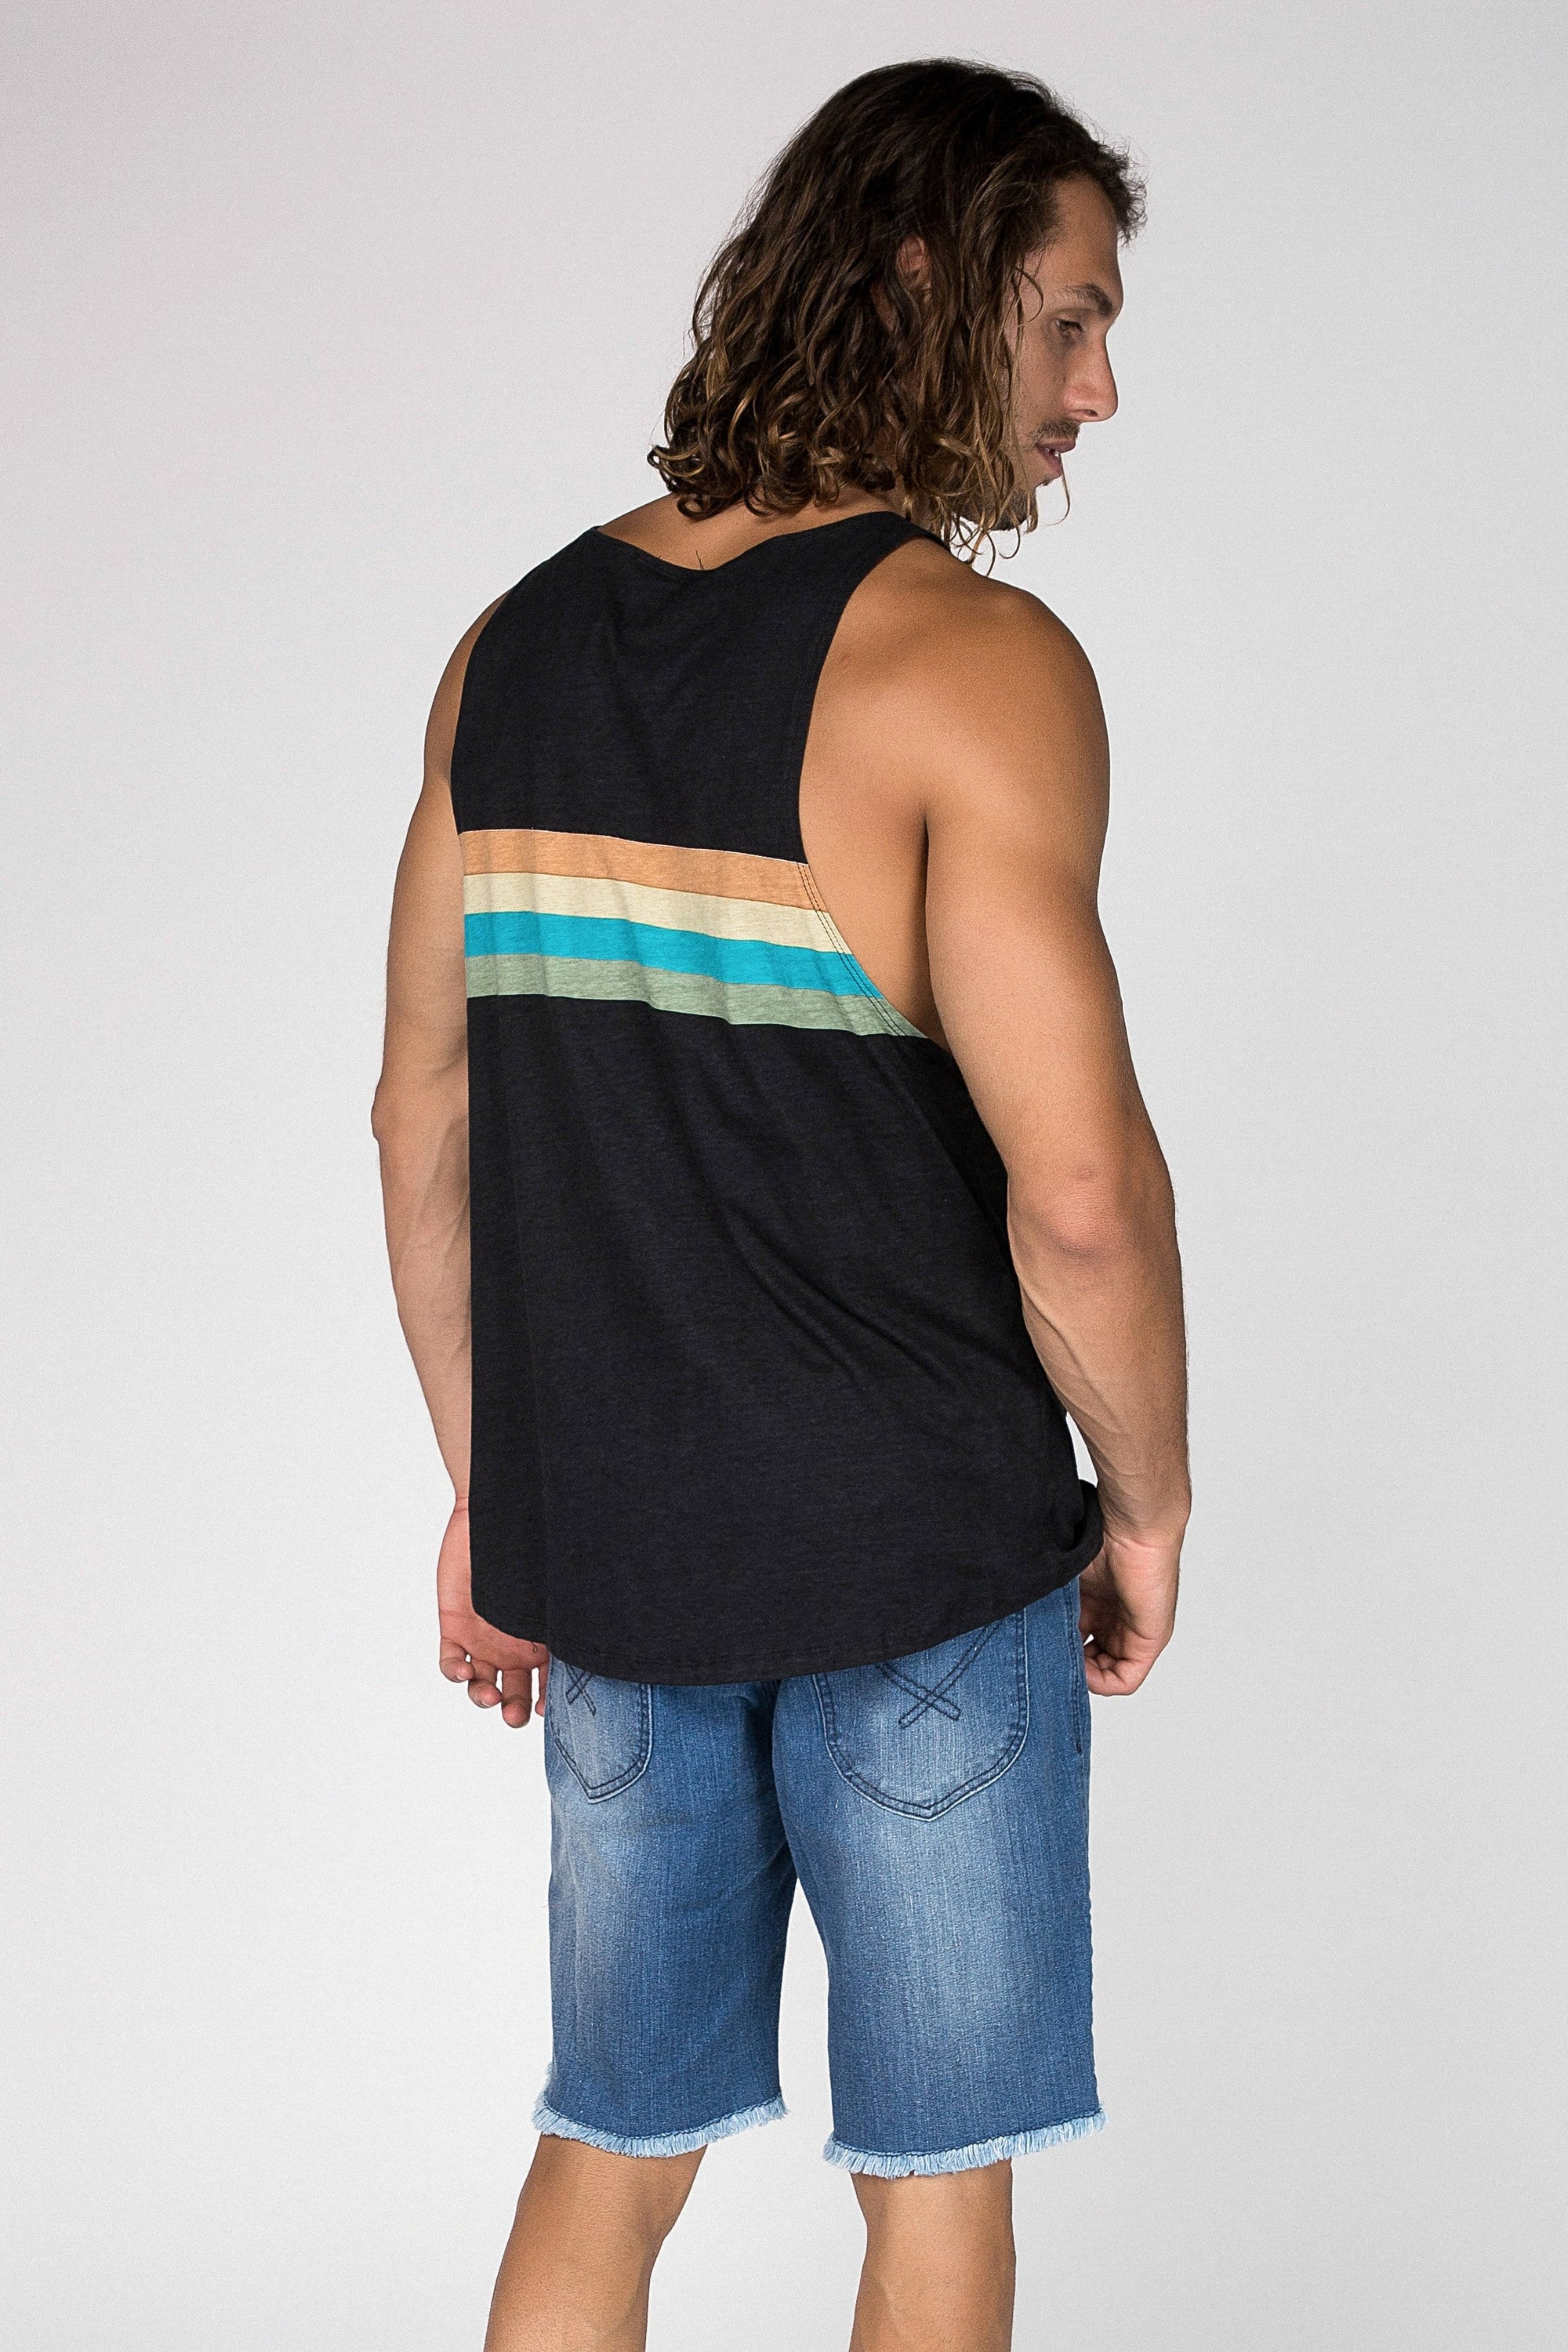 Graded Sing - Mens Muscle Tank - LOST IN PARADISE